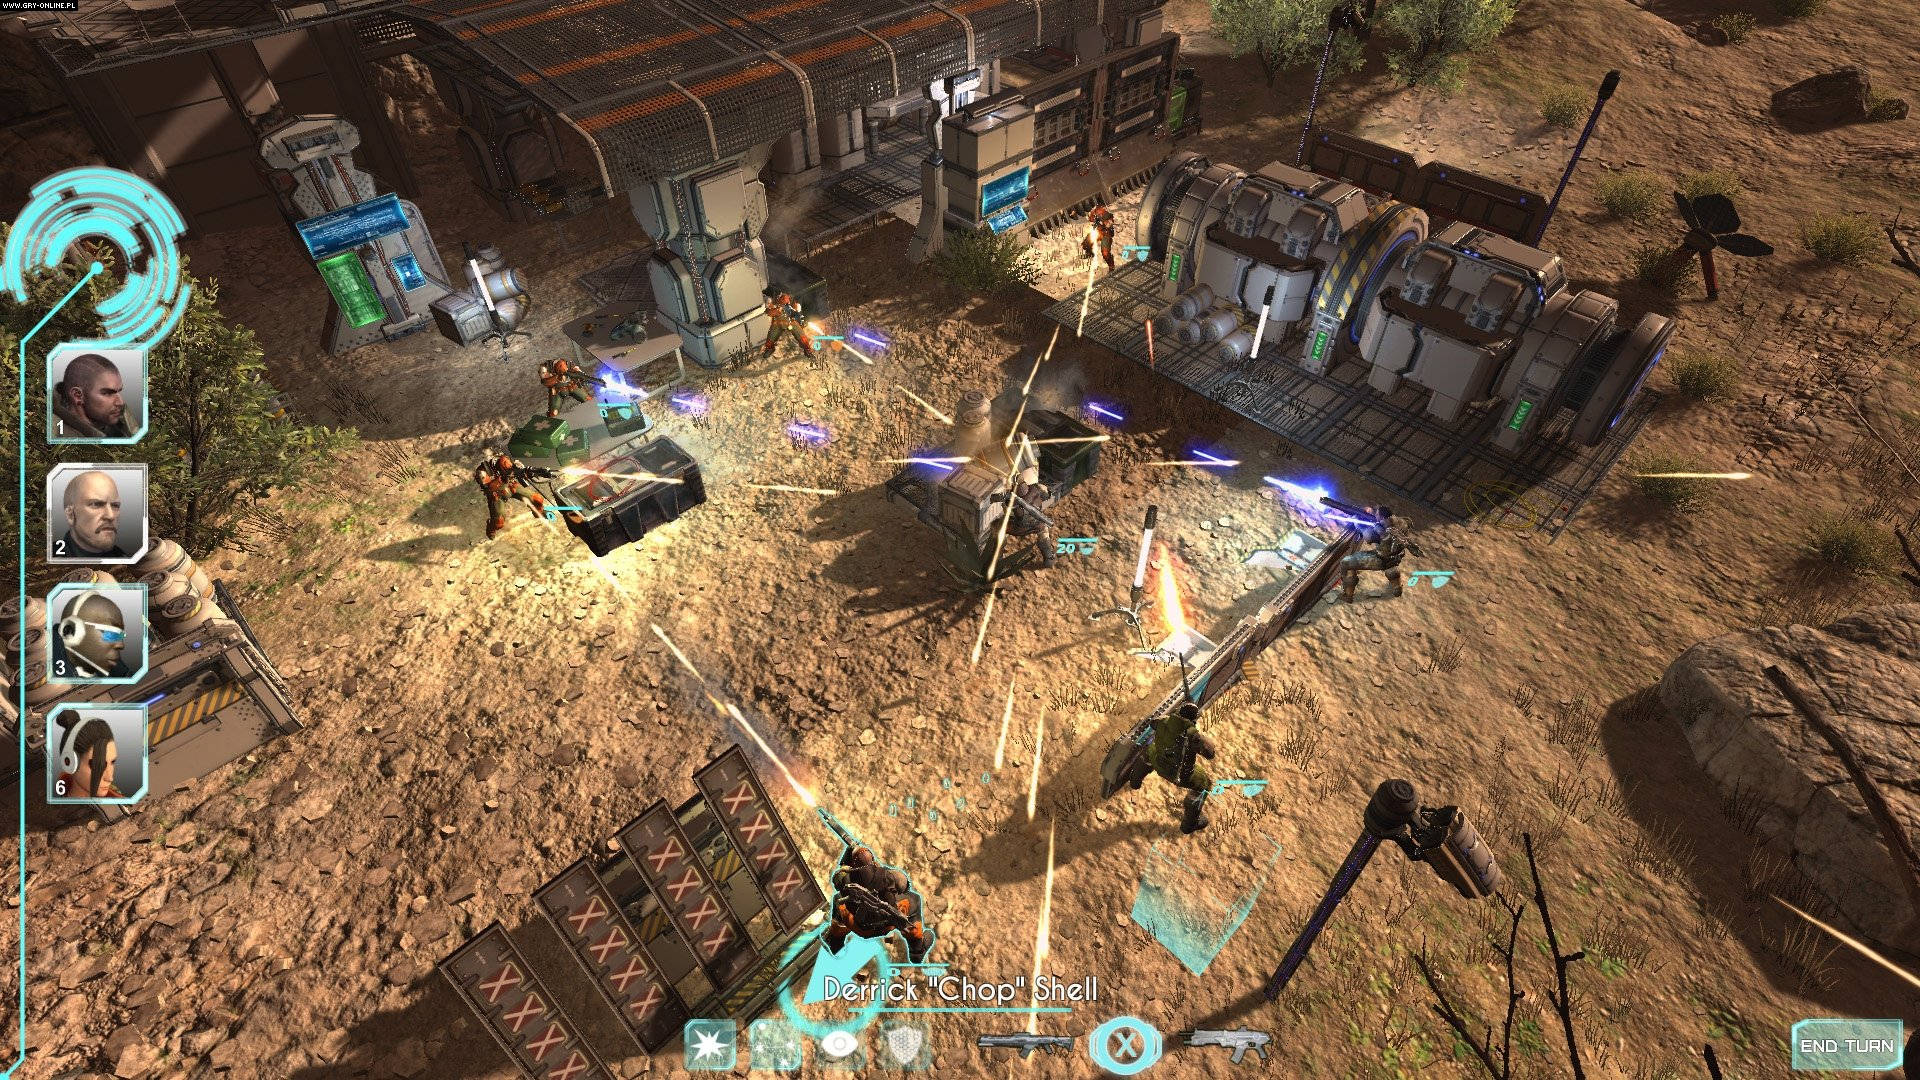 Shock Tactics PC Games Image 7/9, Point Blank Games, EuroVideo Medien